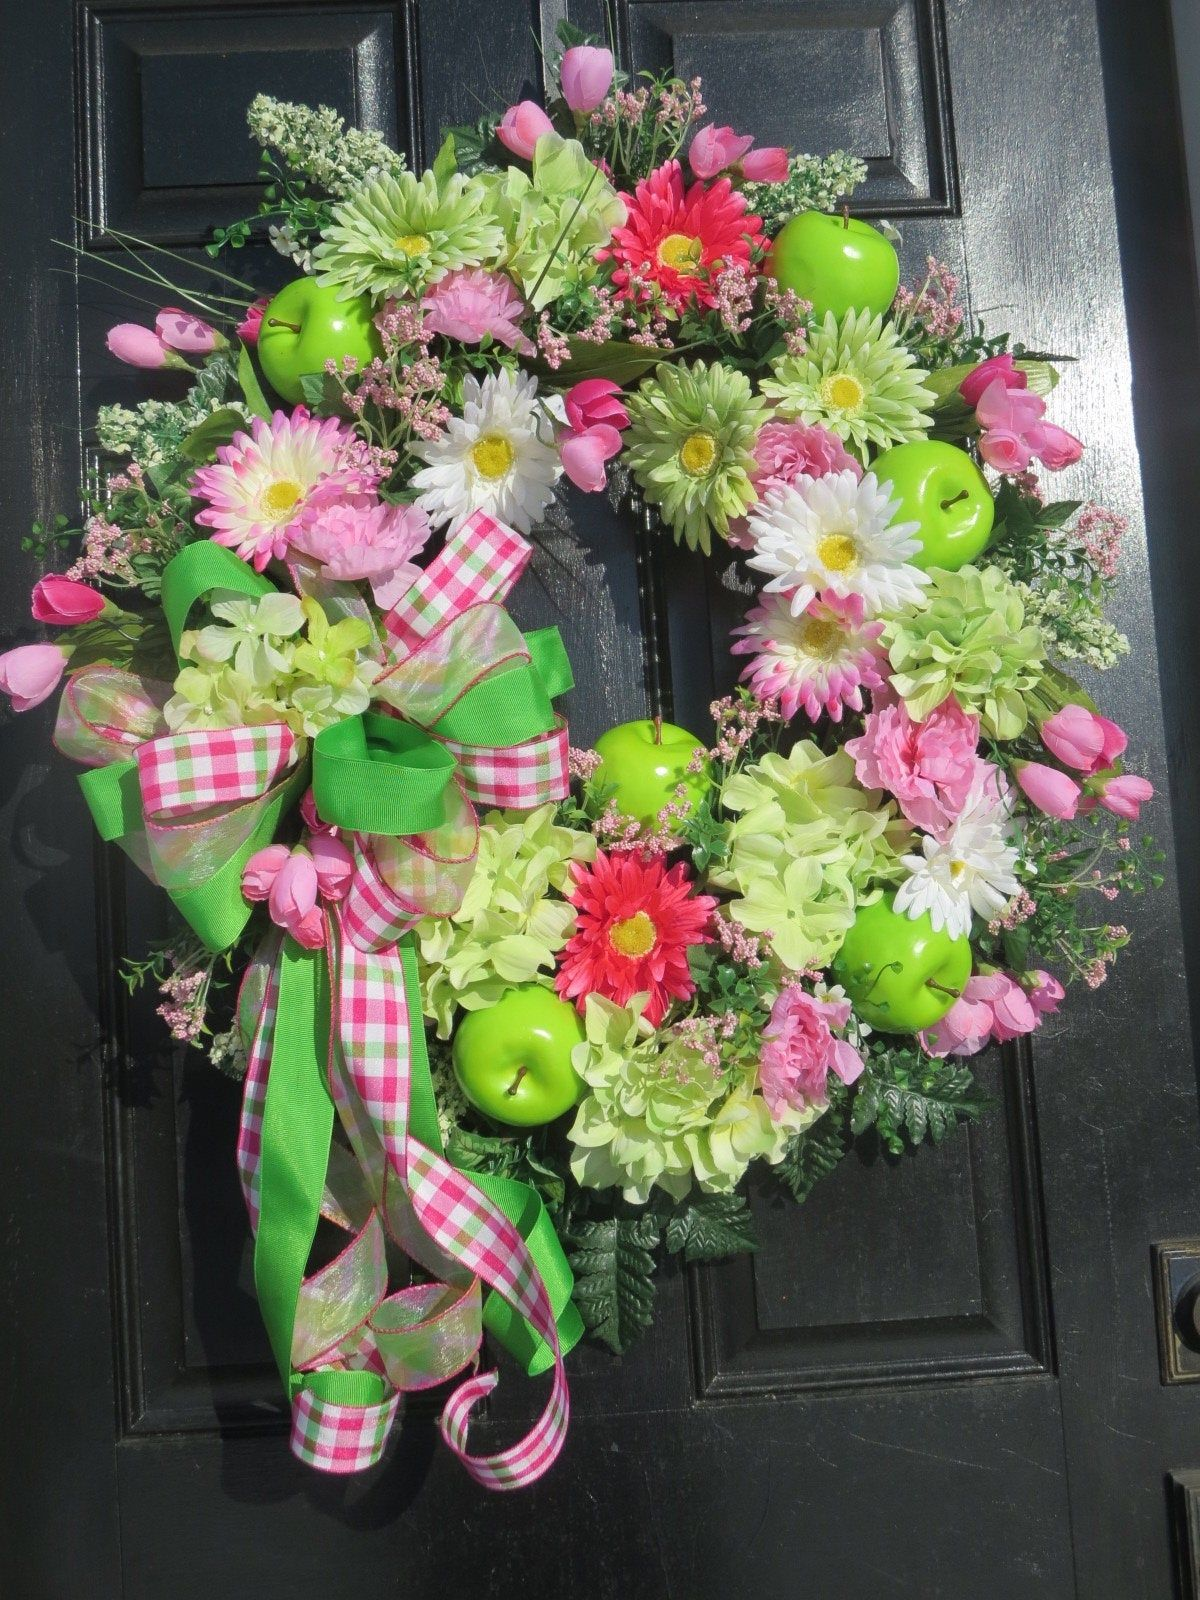 Photo of Spring summer wreath for front door, green apples, mother's day gift